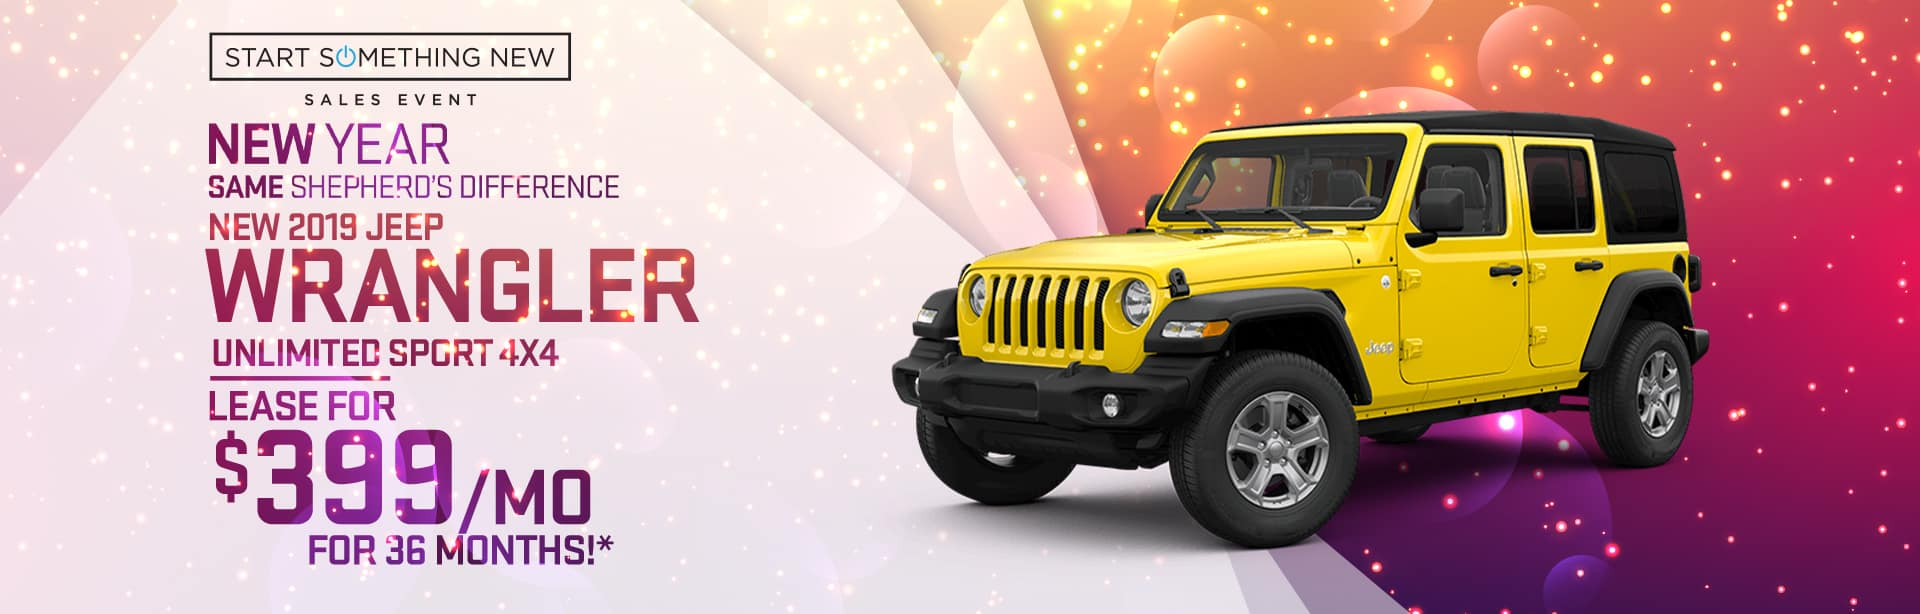 Lease special on a New Jeep Wrangler near Fort Wayne, Indiana